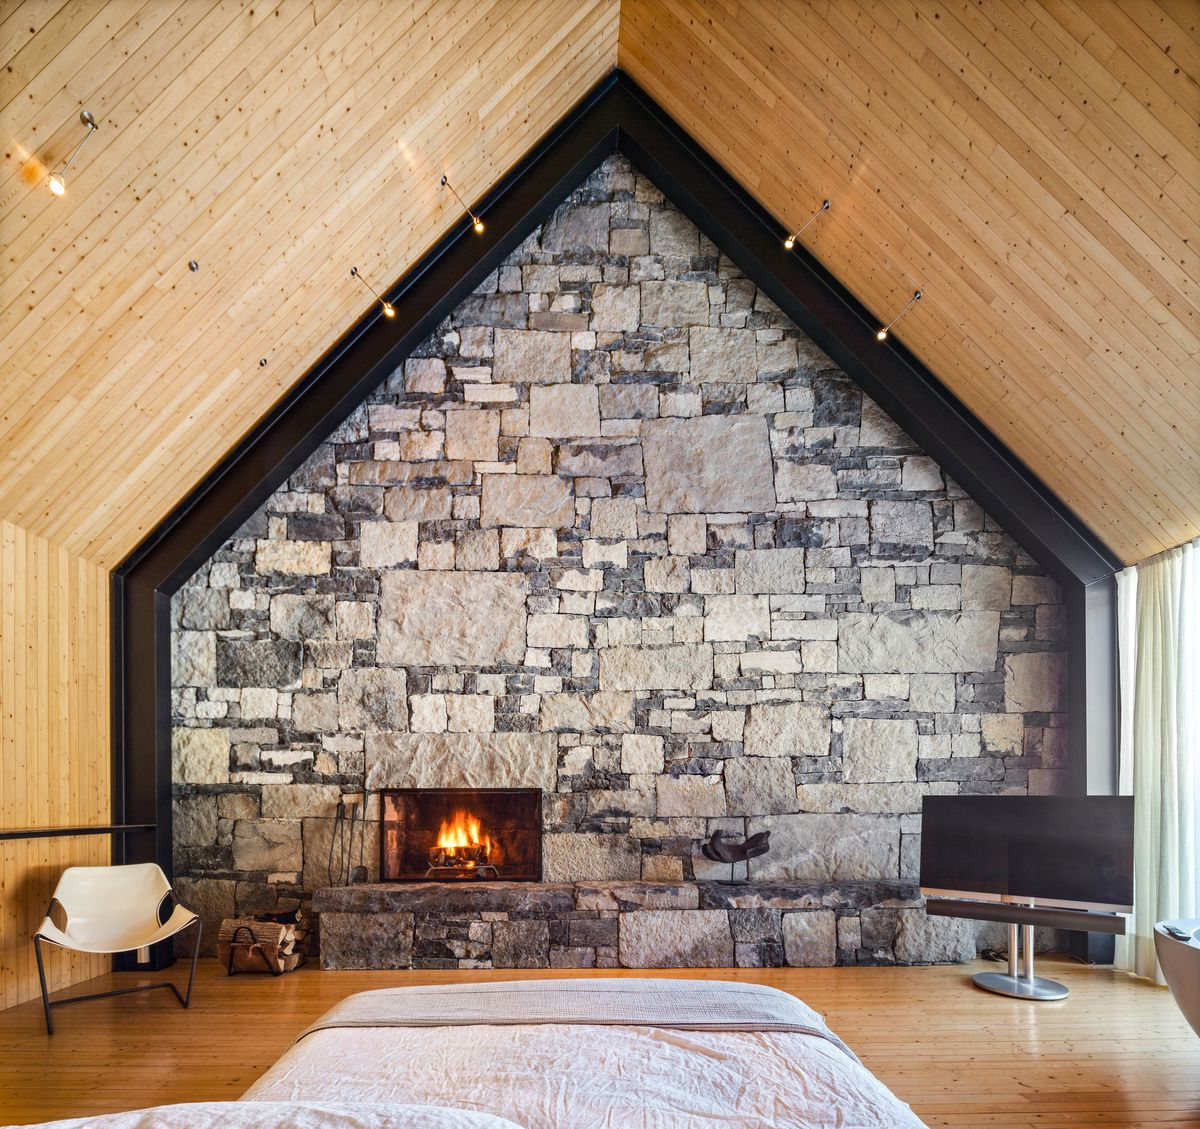 A bedroom has a stone wall with fireplace, black trim, and wooden walls.